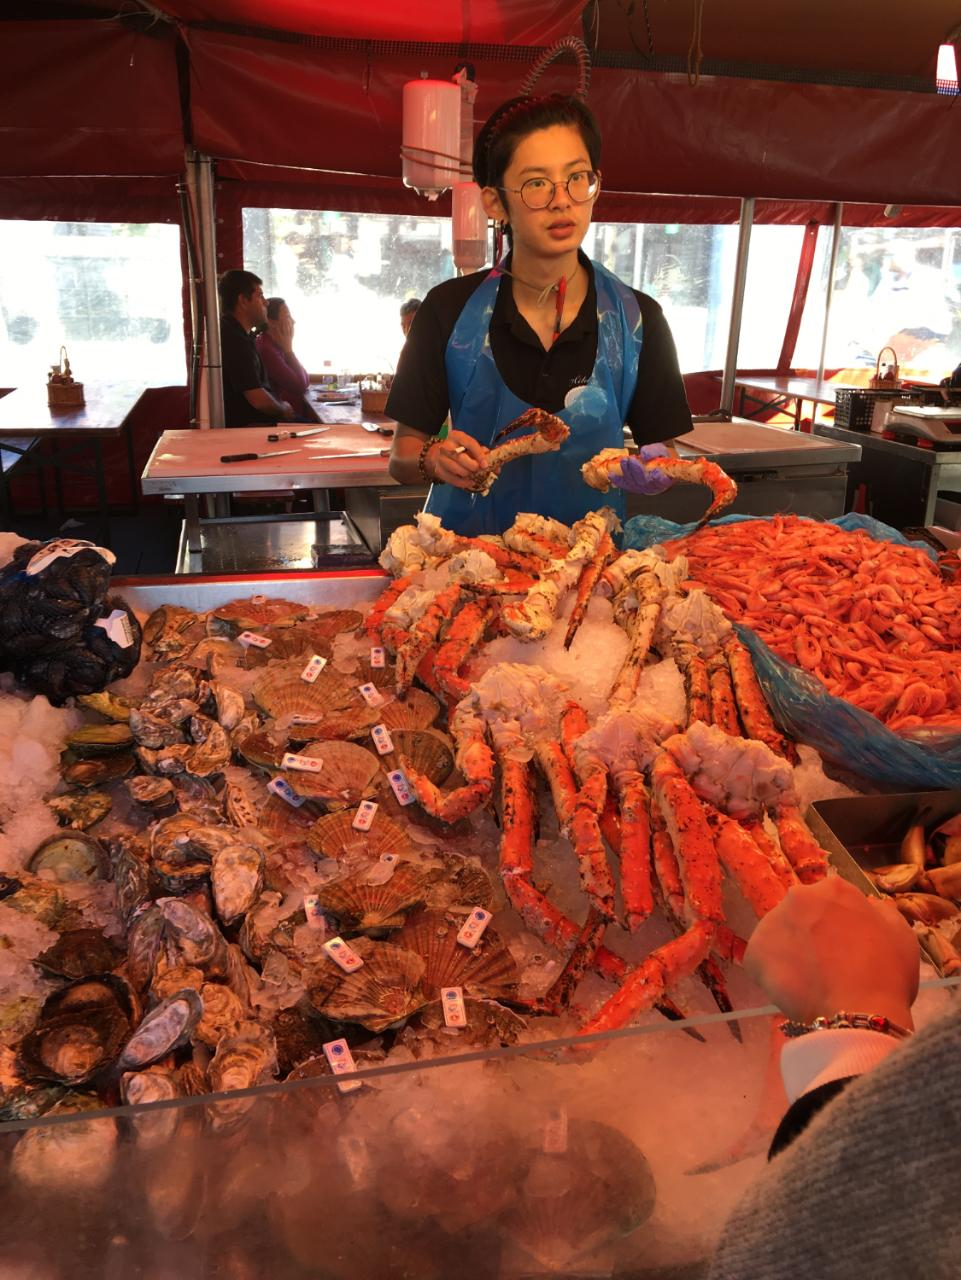 Displays of shellfish, smoked fish and even whale meat are impressive spectacles at Bergen's fish market